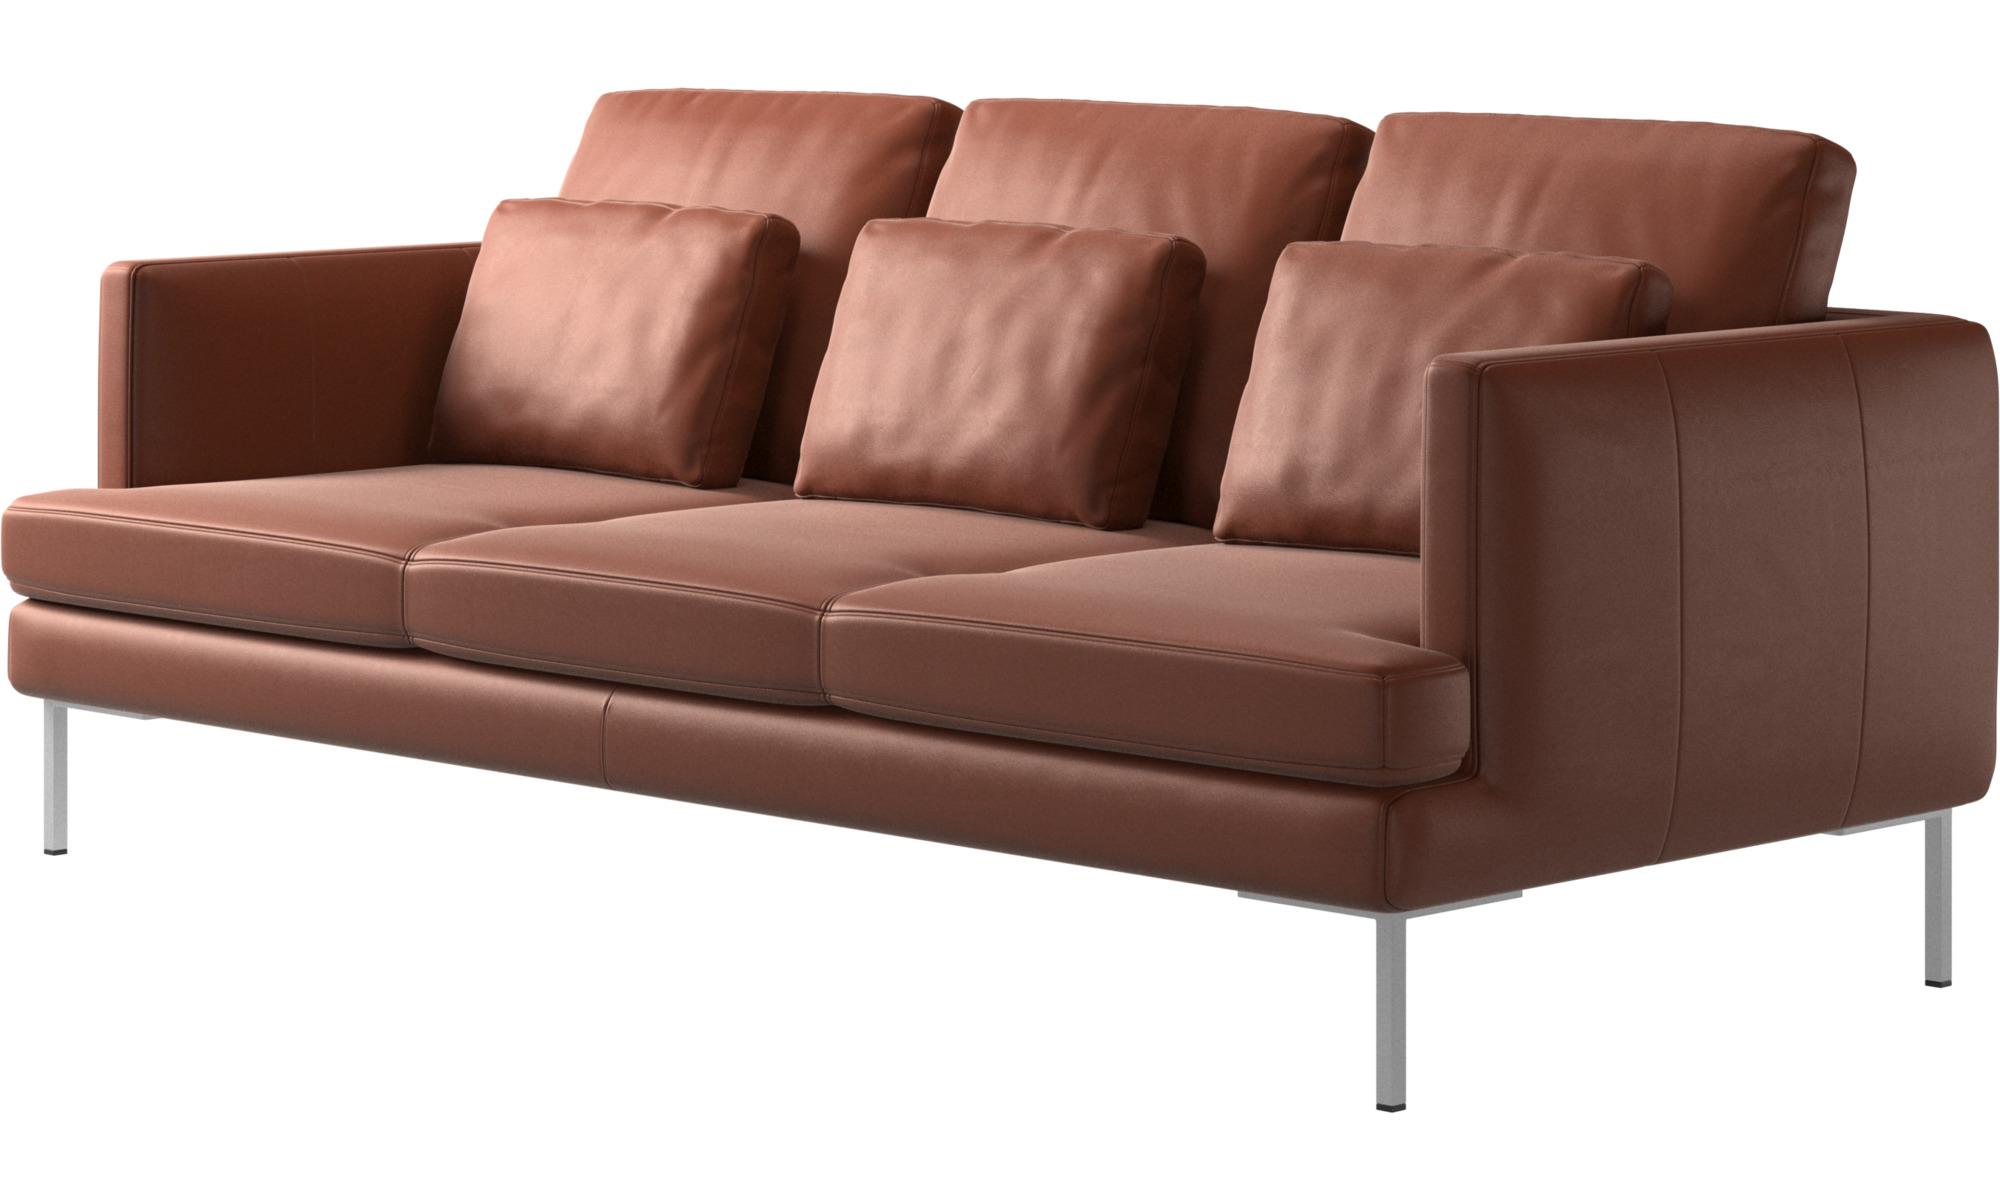 ... 3 Seater Sofas   Istra 2 Sofa   Brown   Leather ...